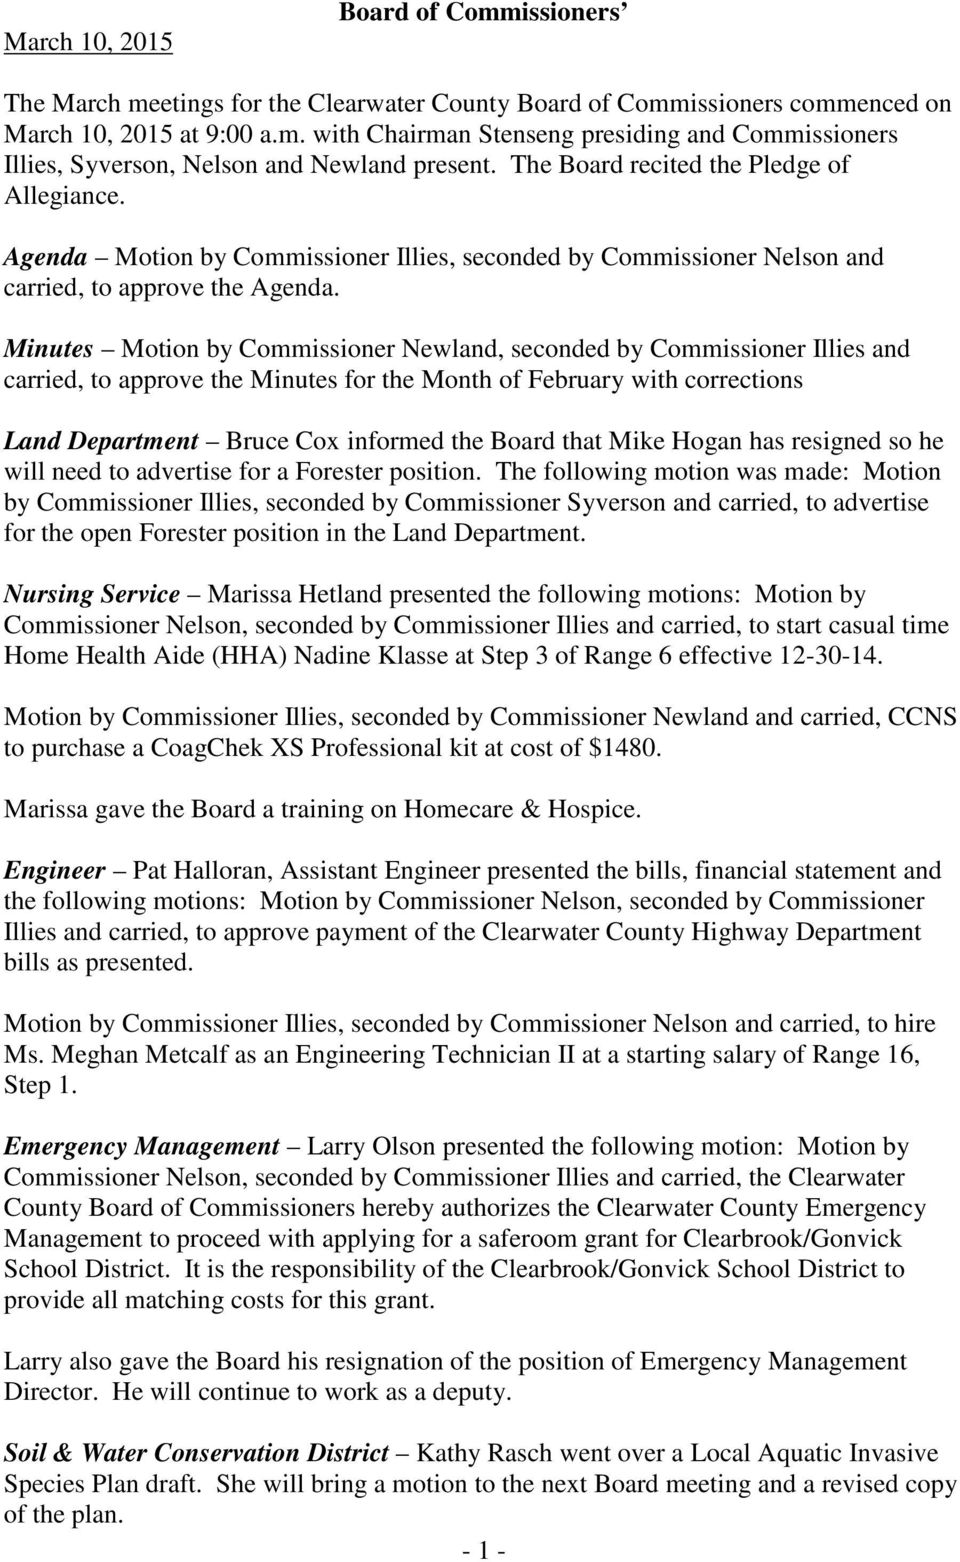 Minutes Motion by Commissioner Newland, seconded by Commissioner Illies and carried, to approve the Minutes for the Month of February with corrections Land Department Bruce Cox informed the Board